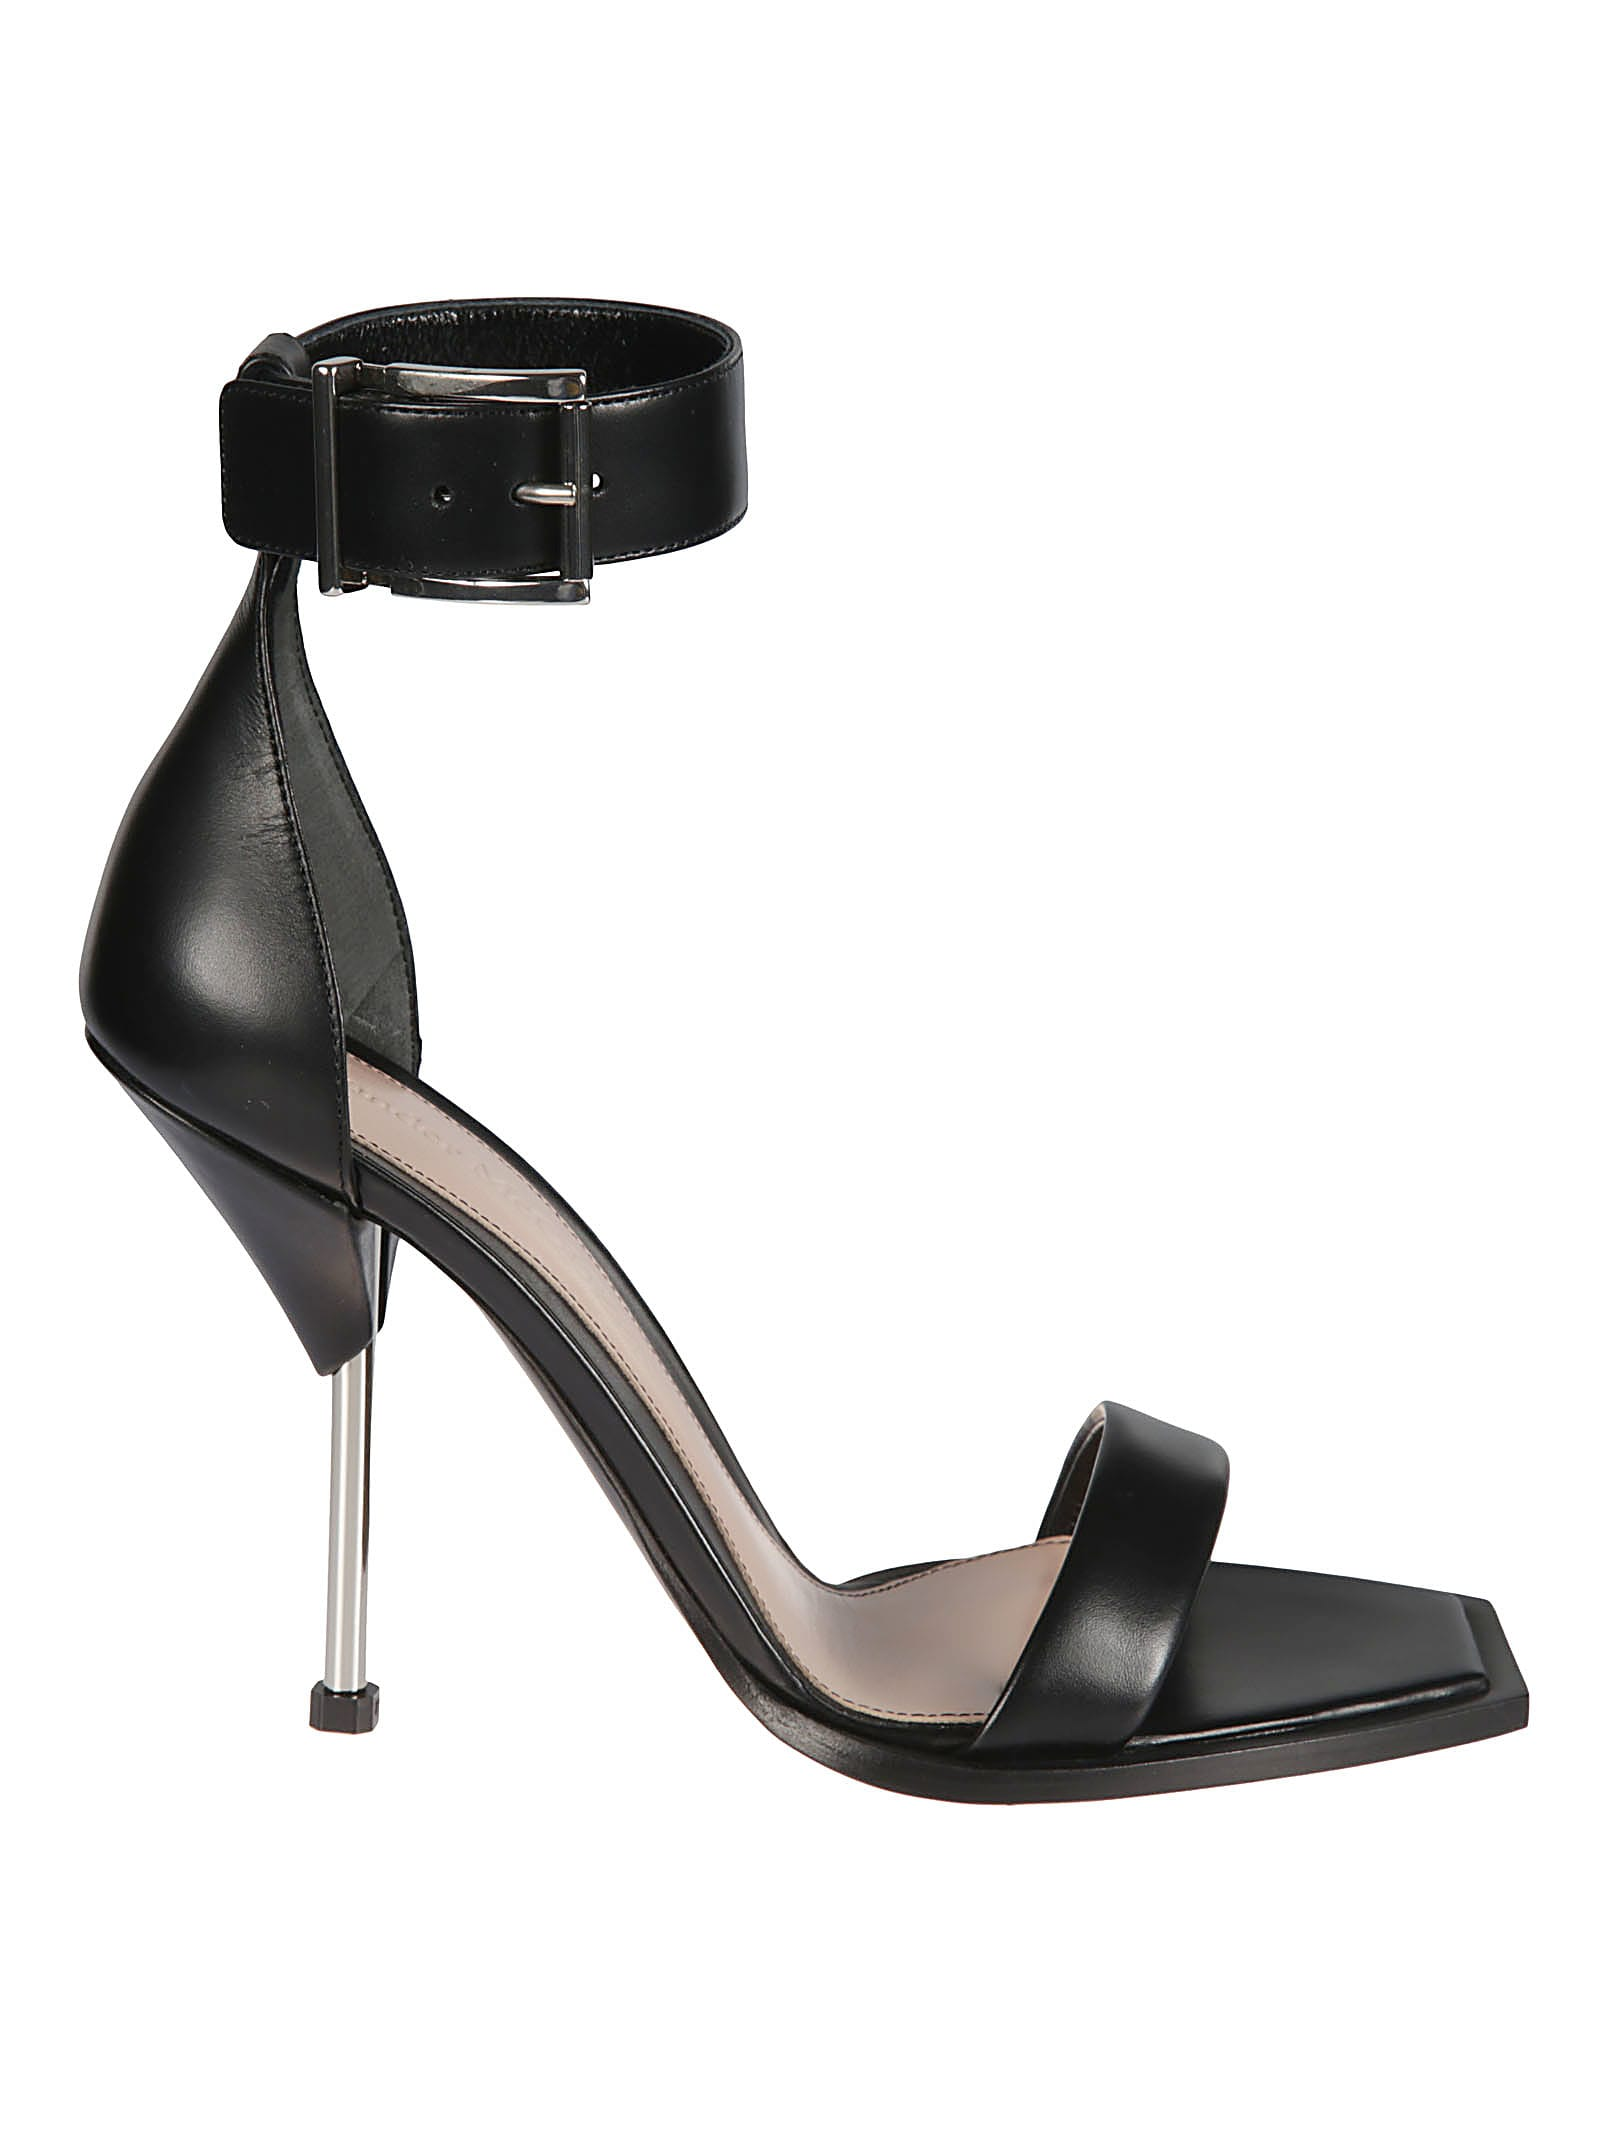 Buy Alexander McQueen Buckled Ankle Strap Sandals online, shop Alexander McQueen shoes with free shipping